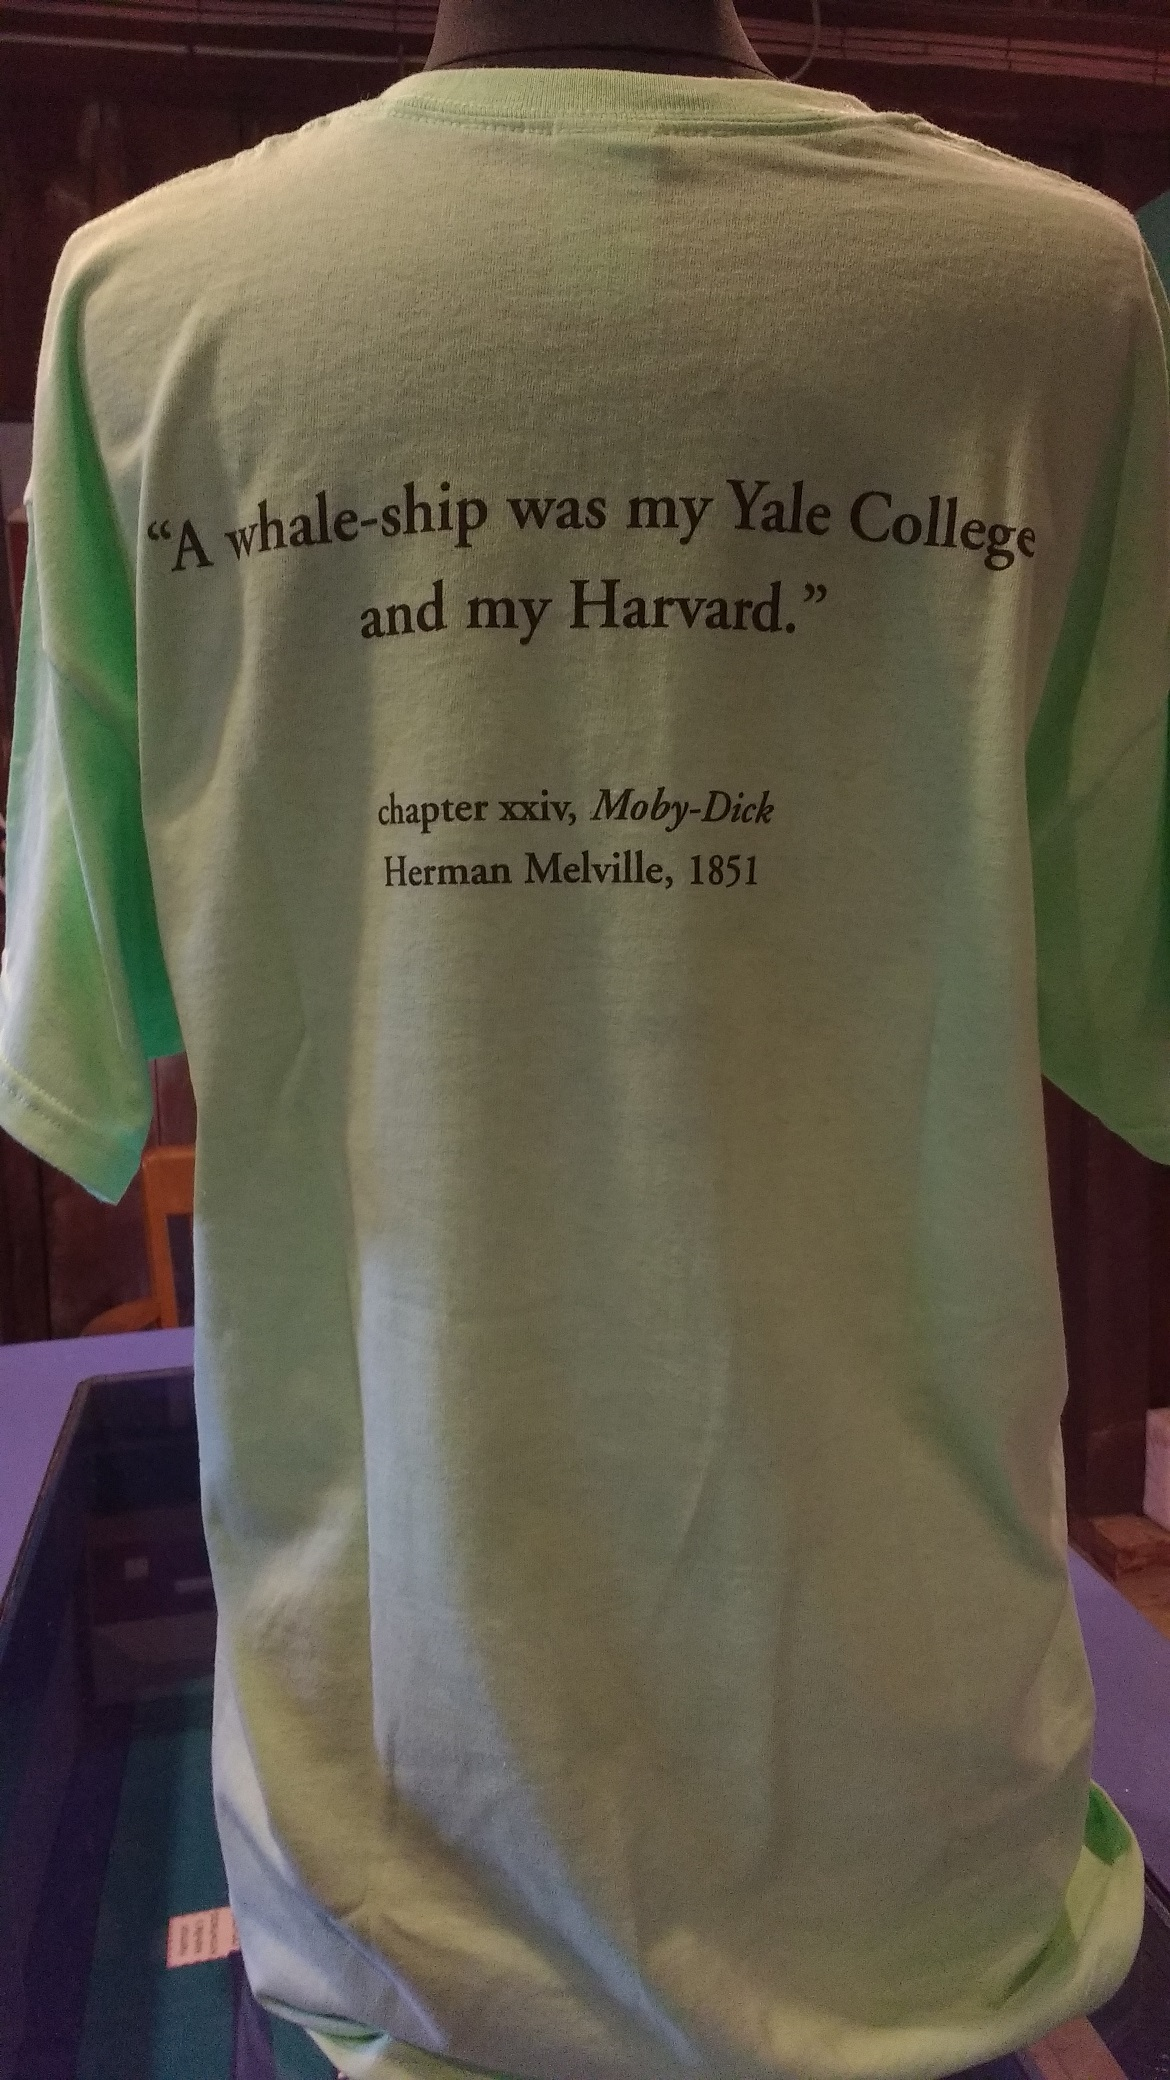 Pequod - A Whale-ship was my Yale College and my Harvard (light blue)